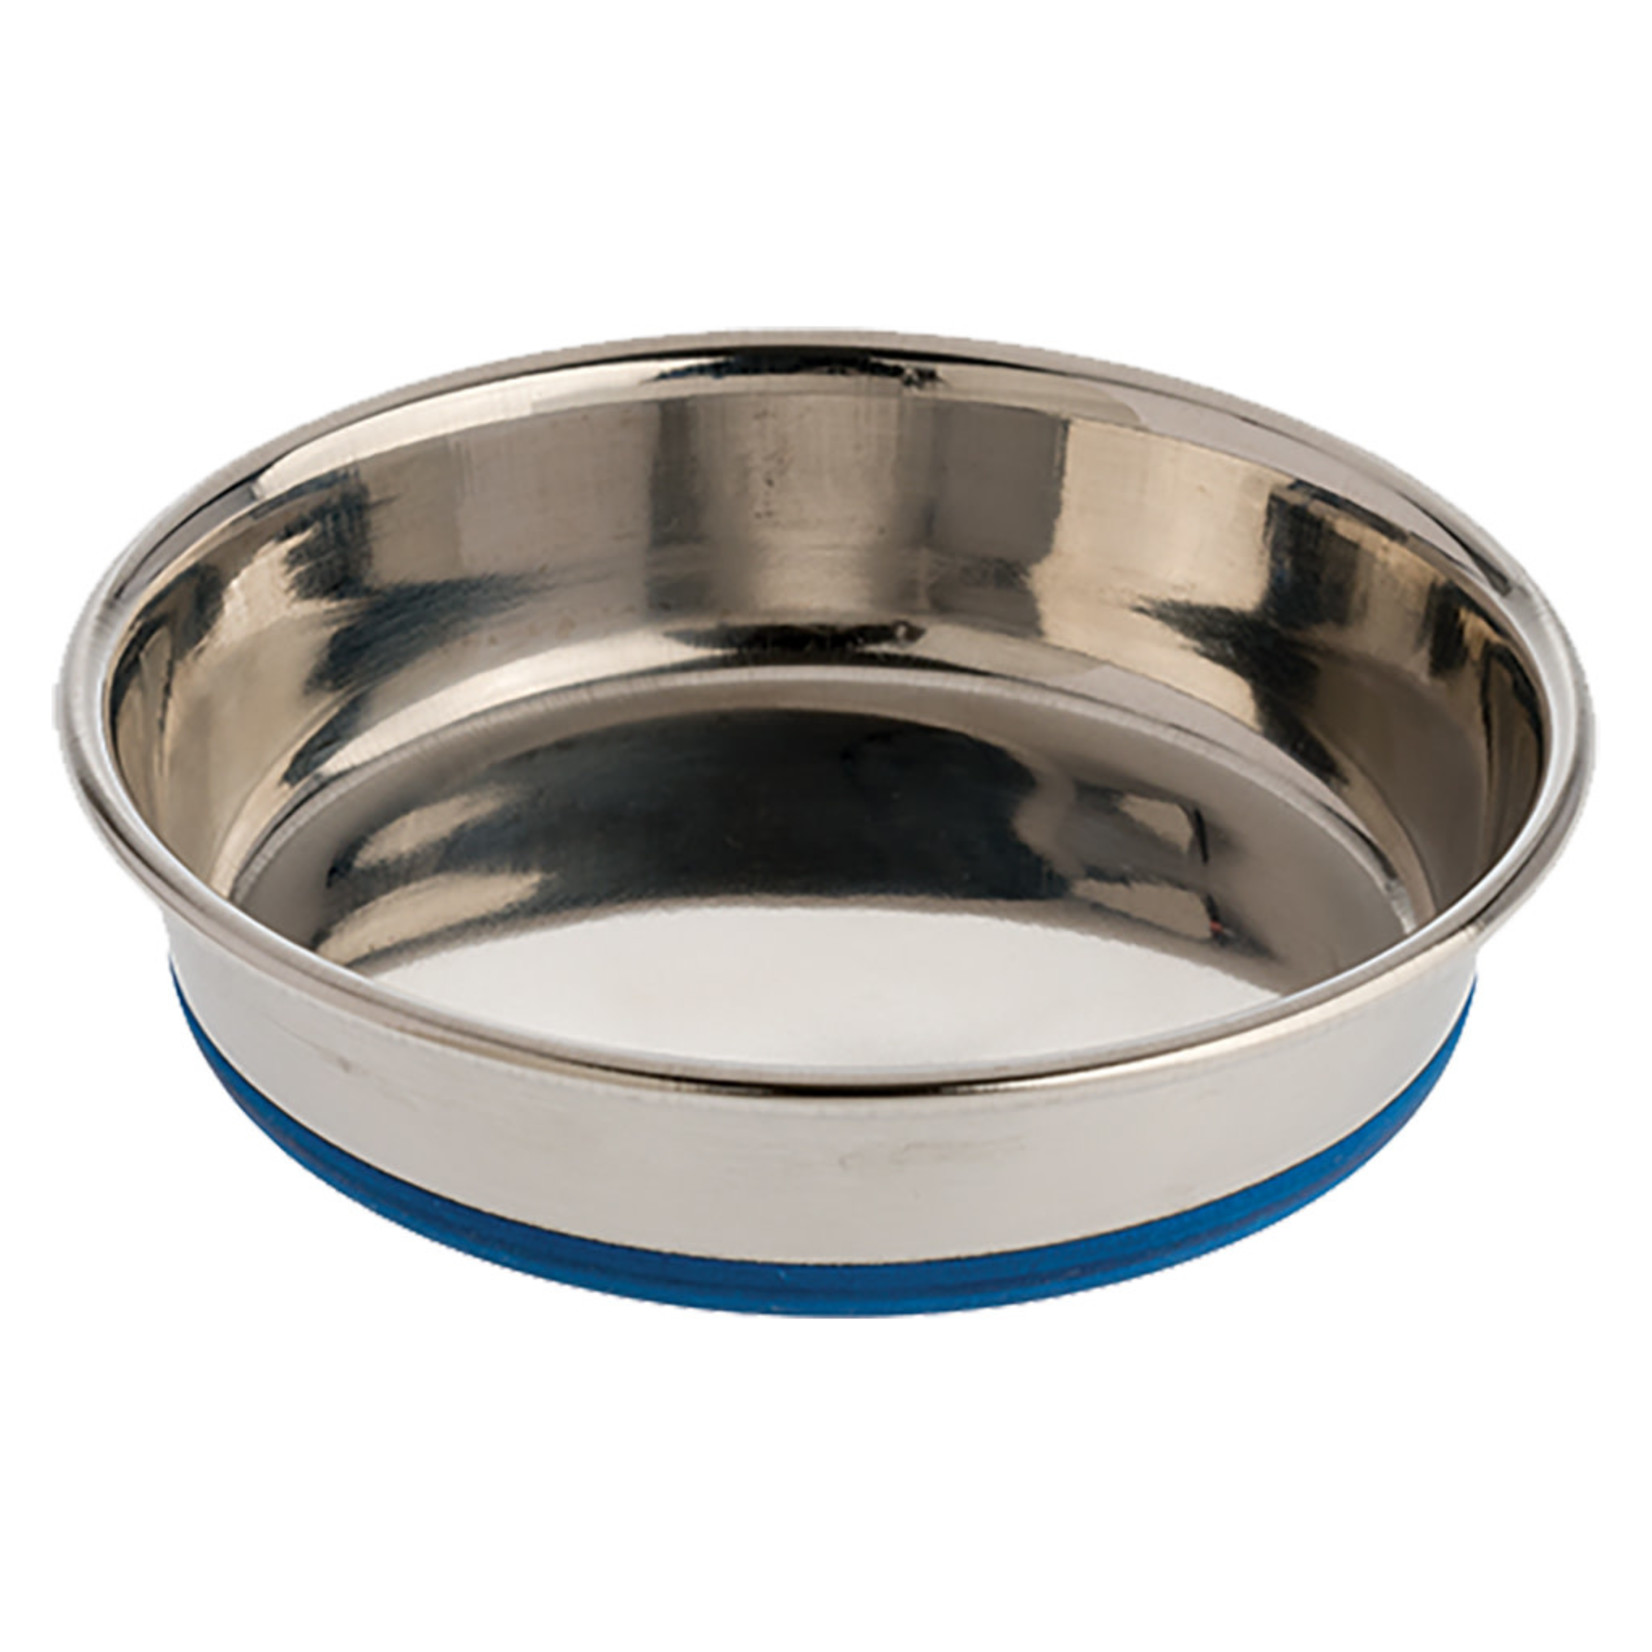 Rubber Bonded Stainless Steel Dish 16 oz